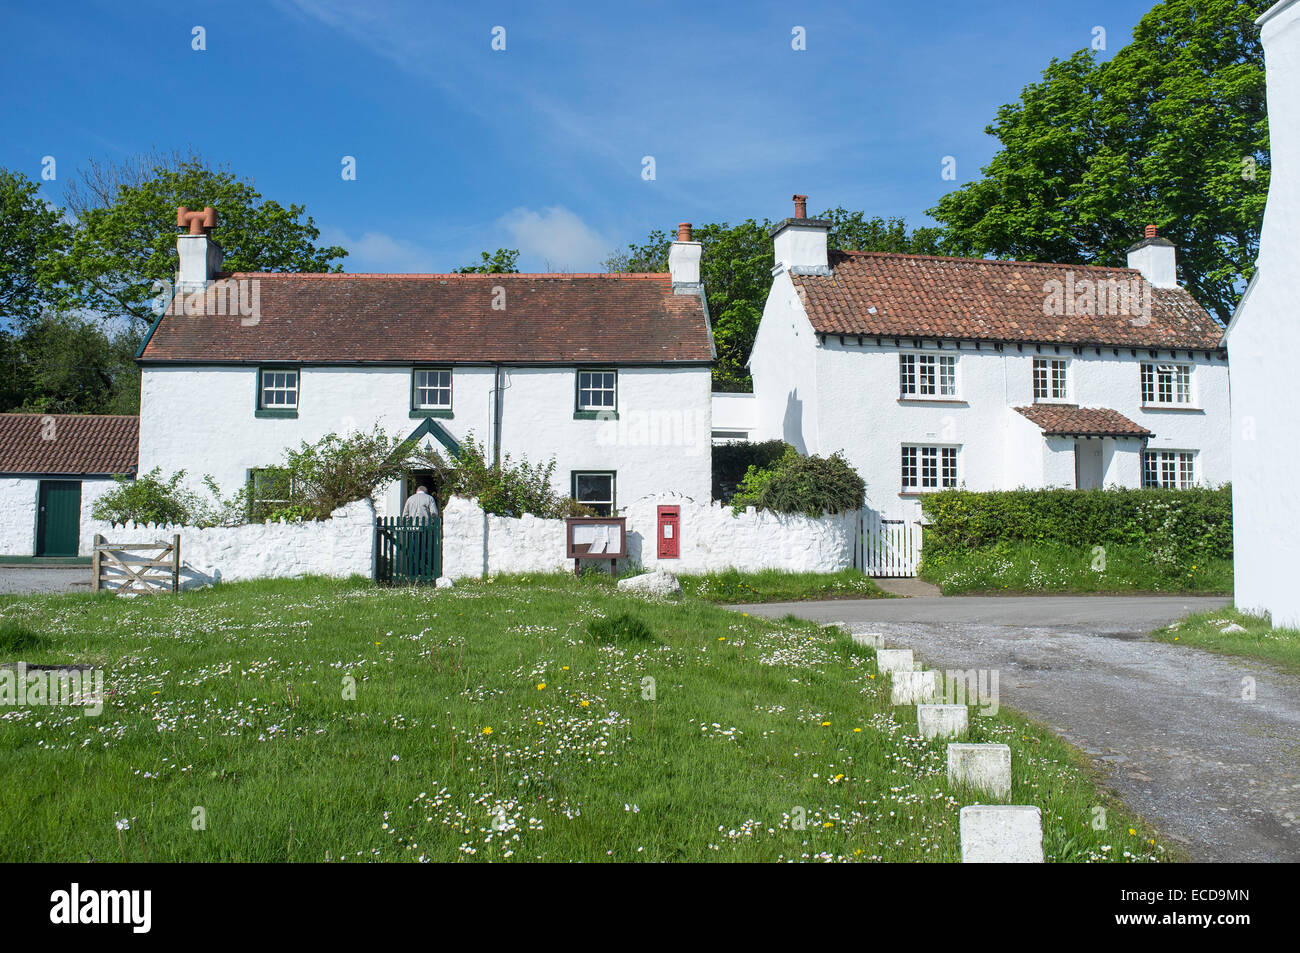 Whitewashed Cottages in Penrice Village on the Gower Peninsular Wales - Stock Image